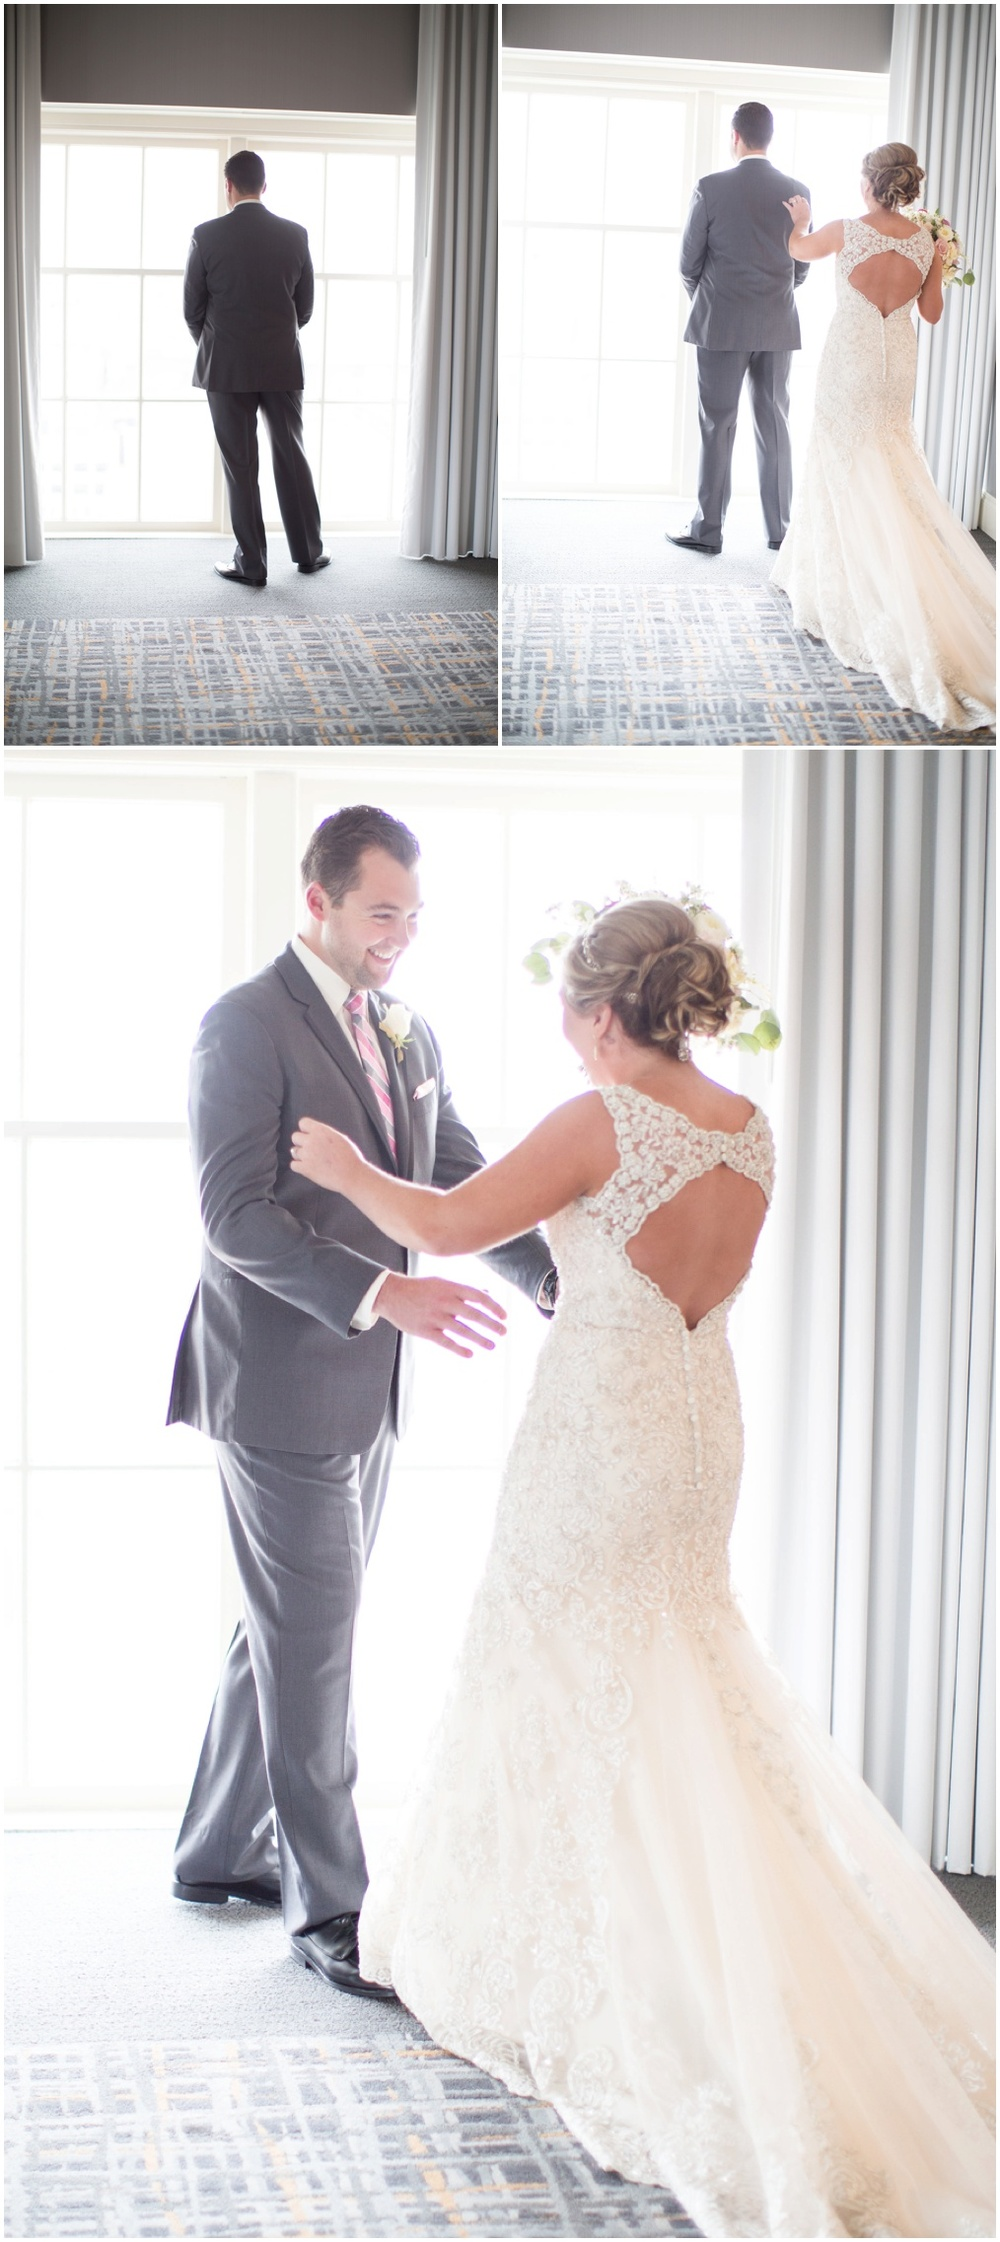 weddingphotographystlouis4.jpg